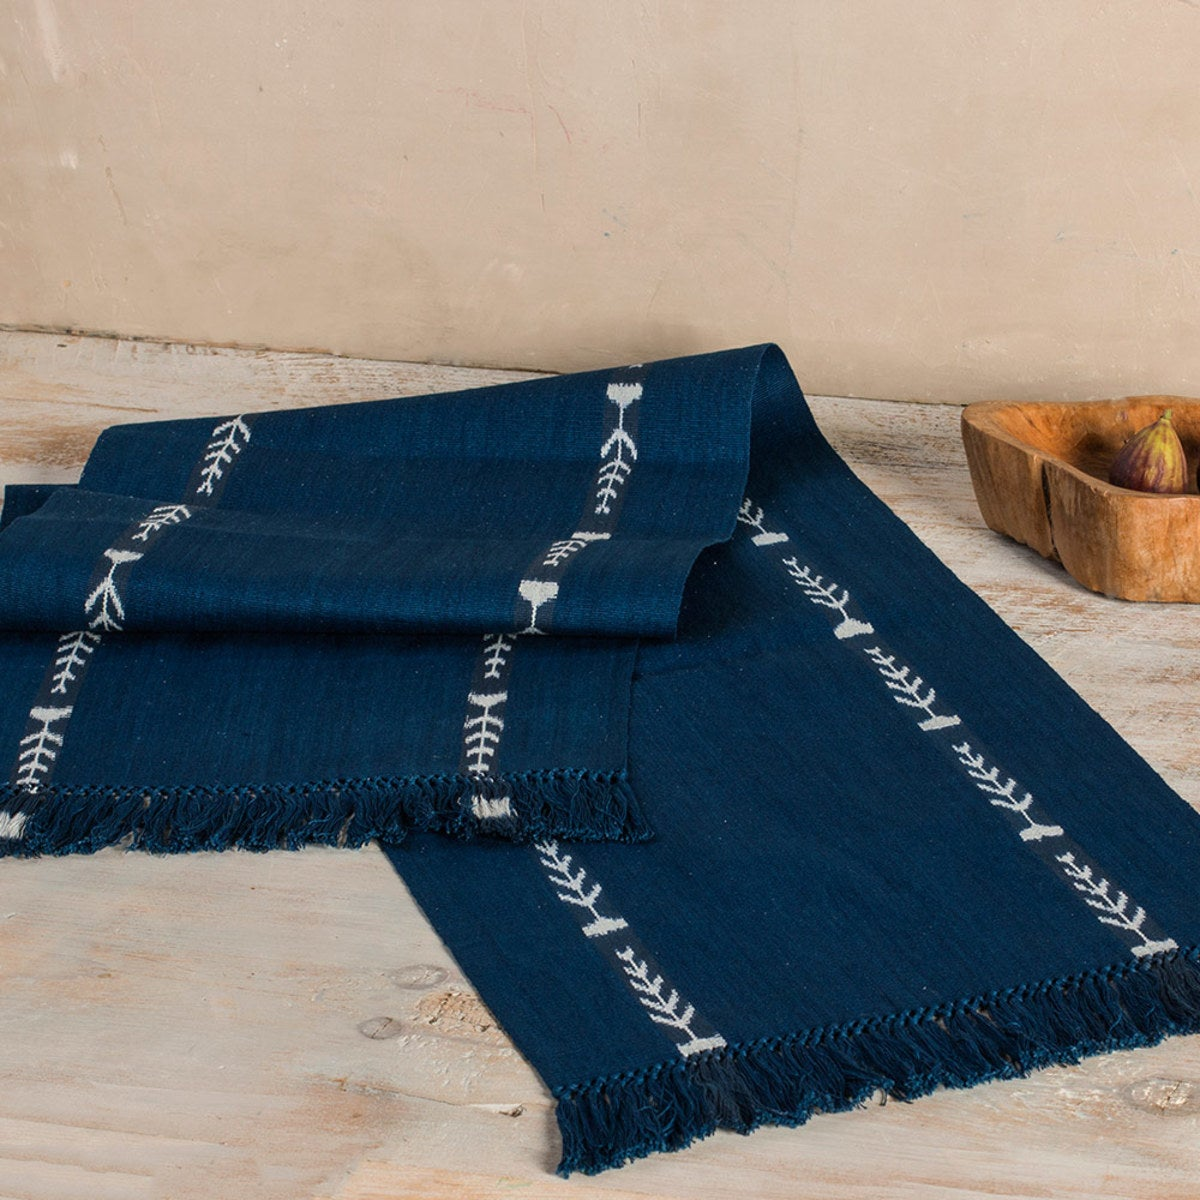 Artisan-Made Fringed Table Runner - Indigo